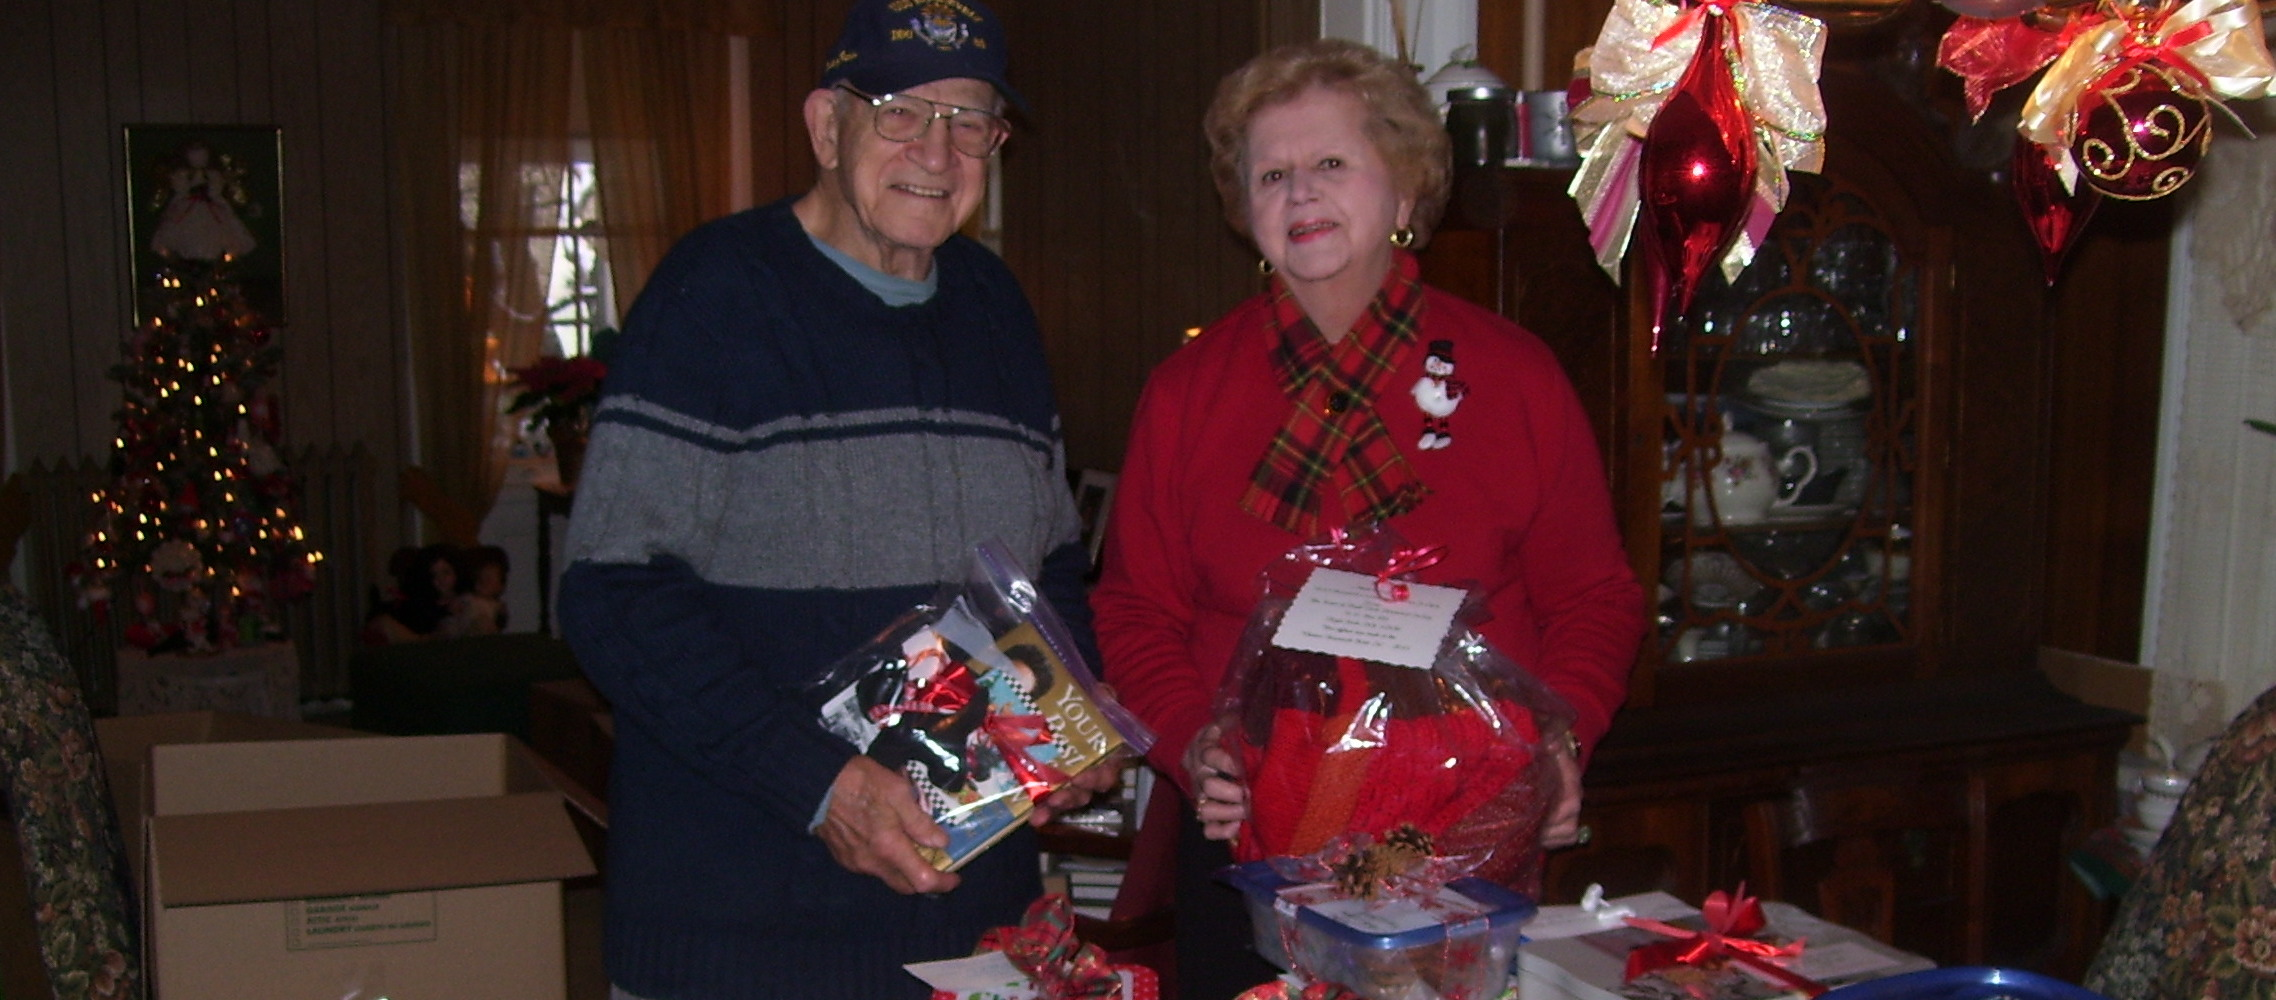 Ralph Osterhoudt, Sr. & Patsy N. Costello -- Cookies being sent to the USS Roosevelt DDG 80 from the Town of Hyde Park Historical Society